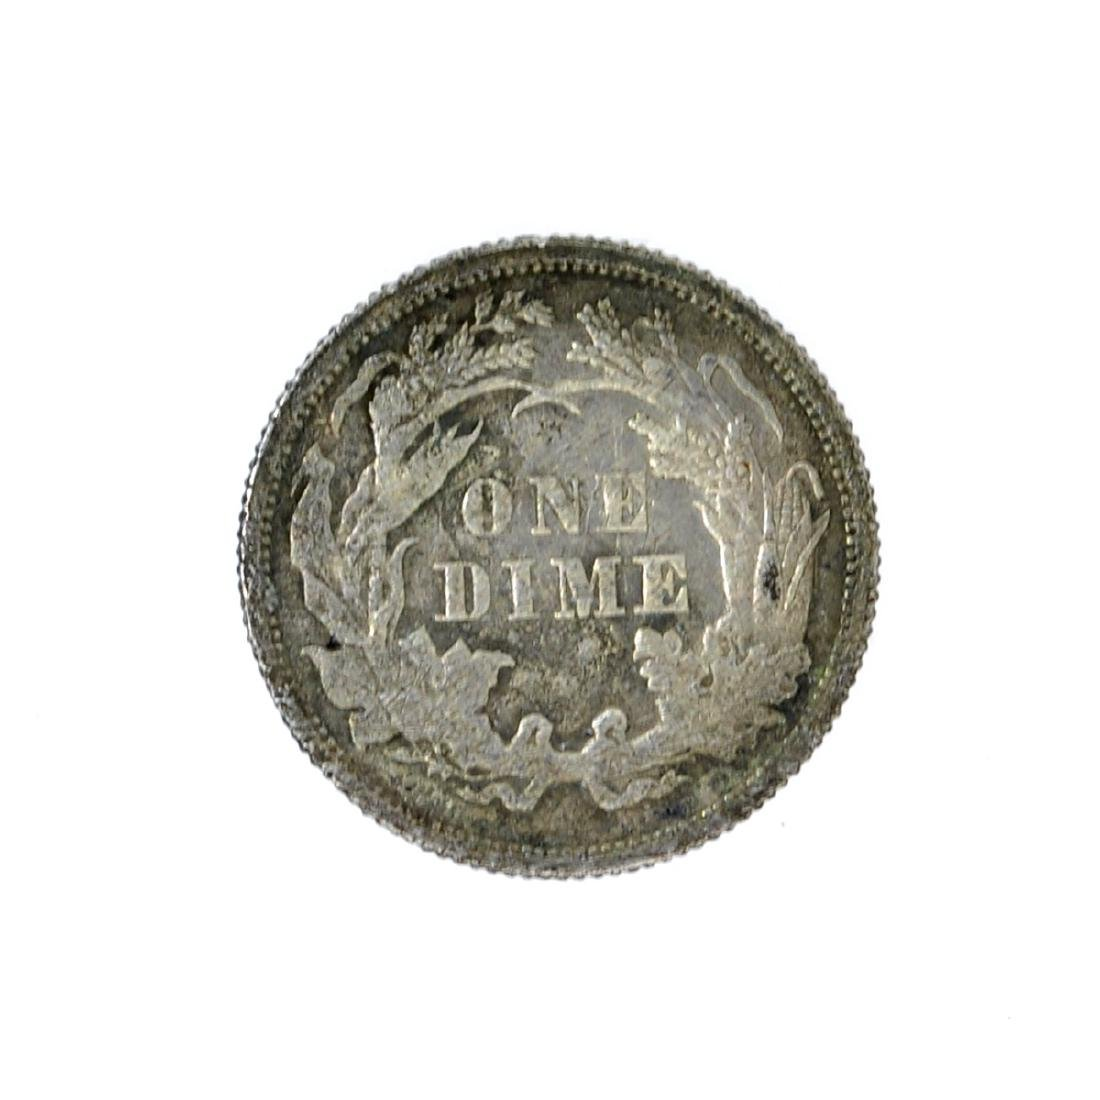 1878 Liberty Seated Dime Coin - 2